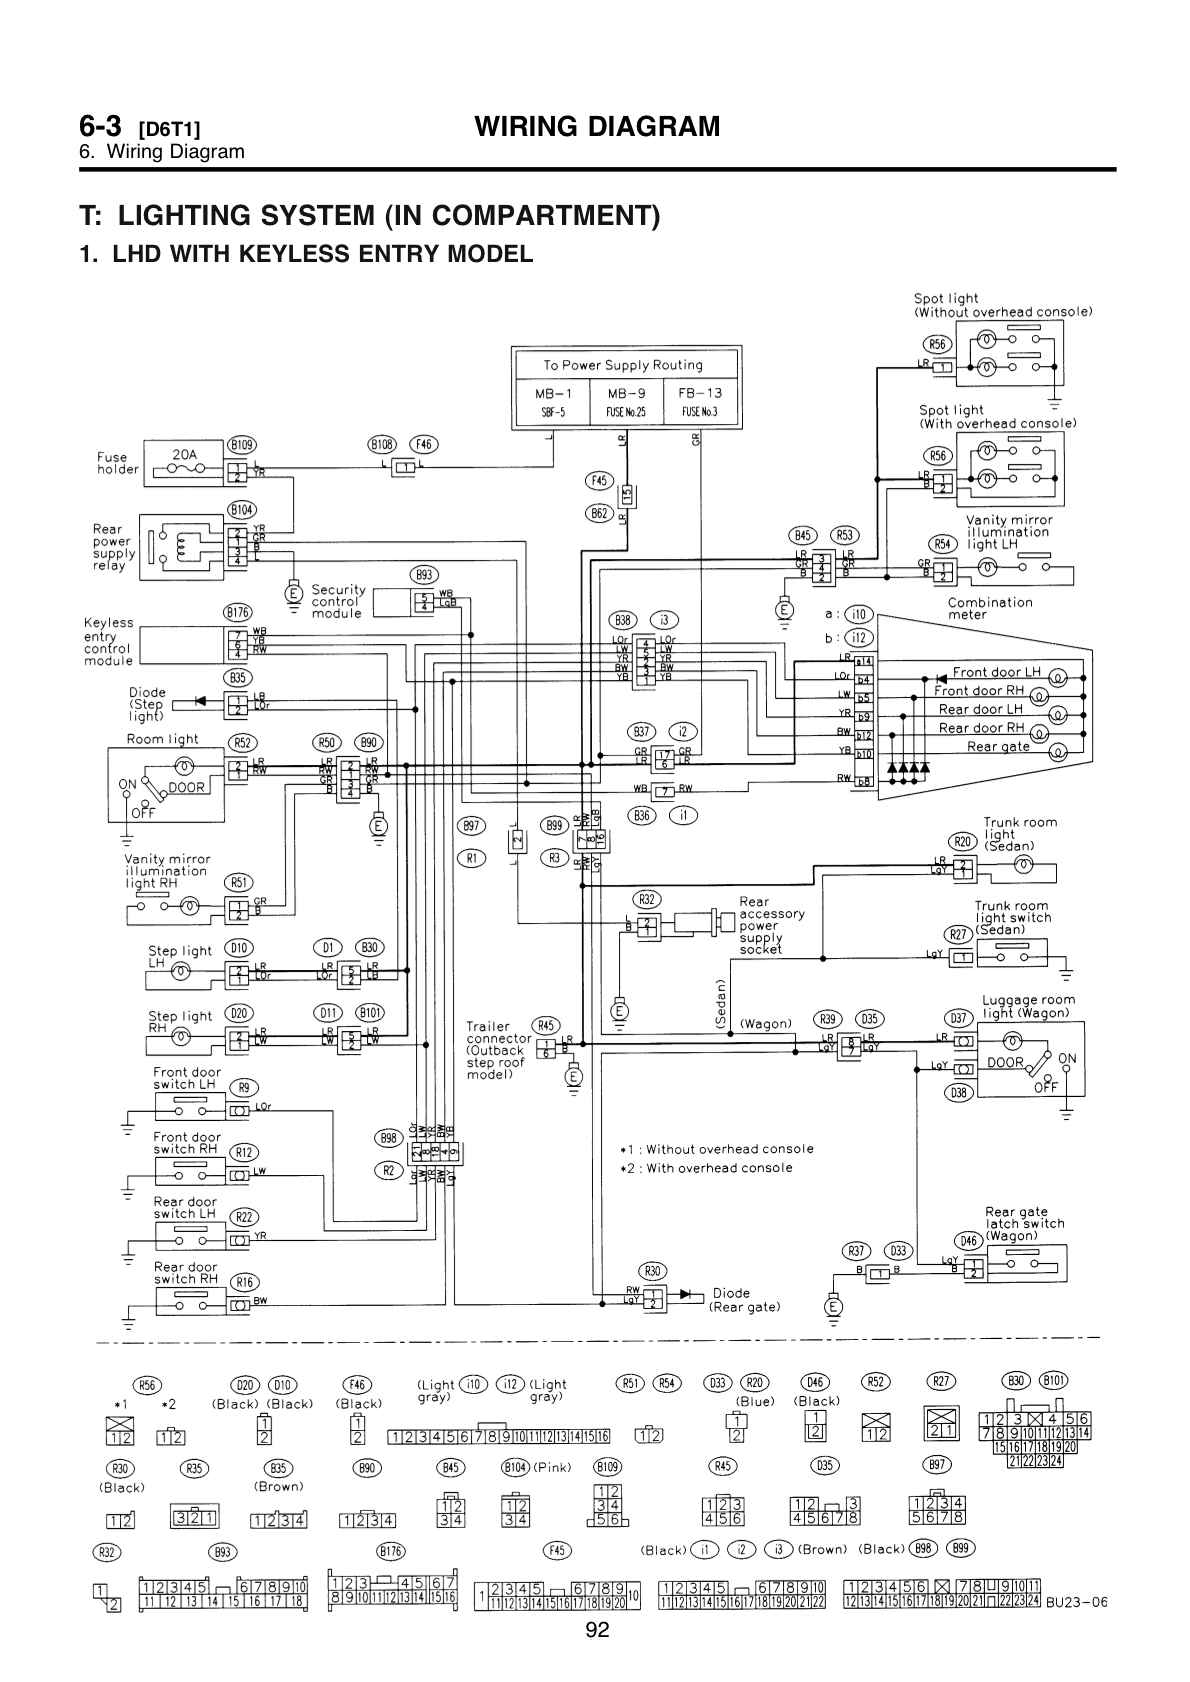 2000 subaru impreza wiring diagram | cable-village wiring diagram union -  cable-village.buildingblocks2016.eu  buildingblocks2016.eu